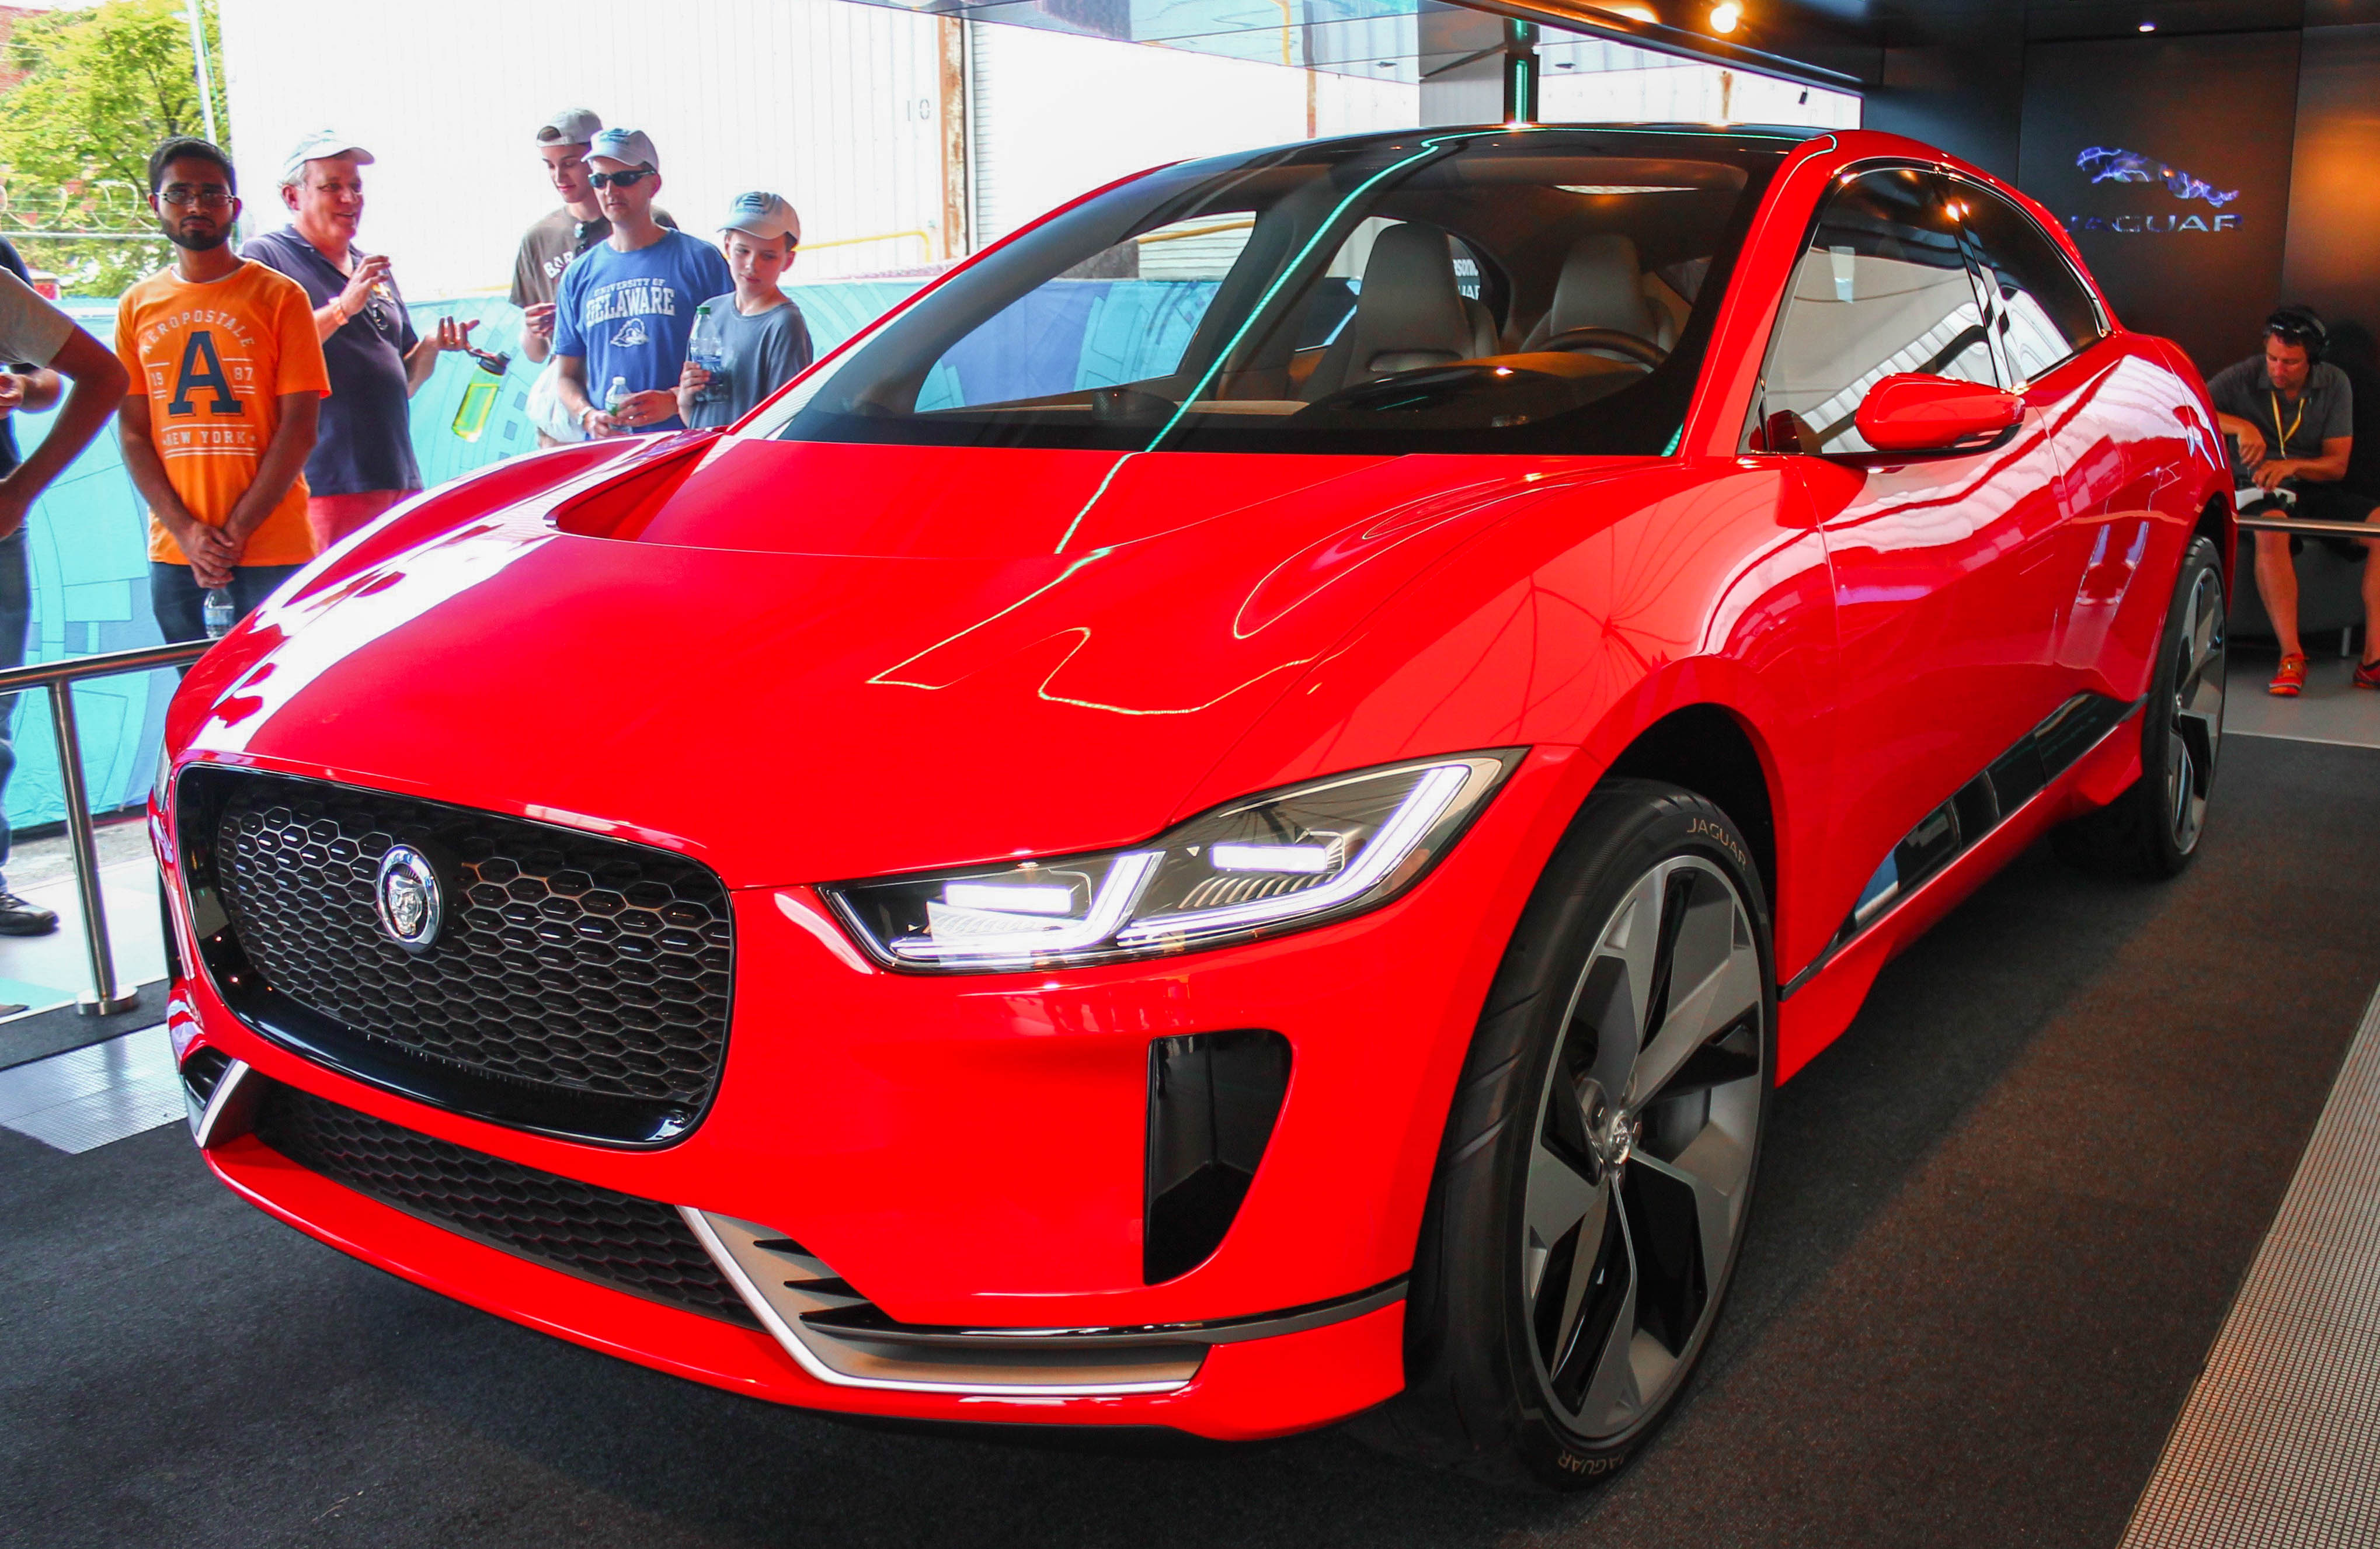 The Jaguar I-Pace concept at the 2017 New York City Formula E ePrix. The bodywork of this stunning concept is supposedly quite close to the production version and is due next year.